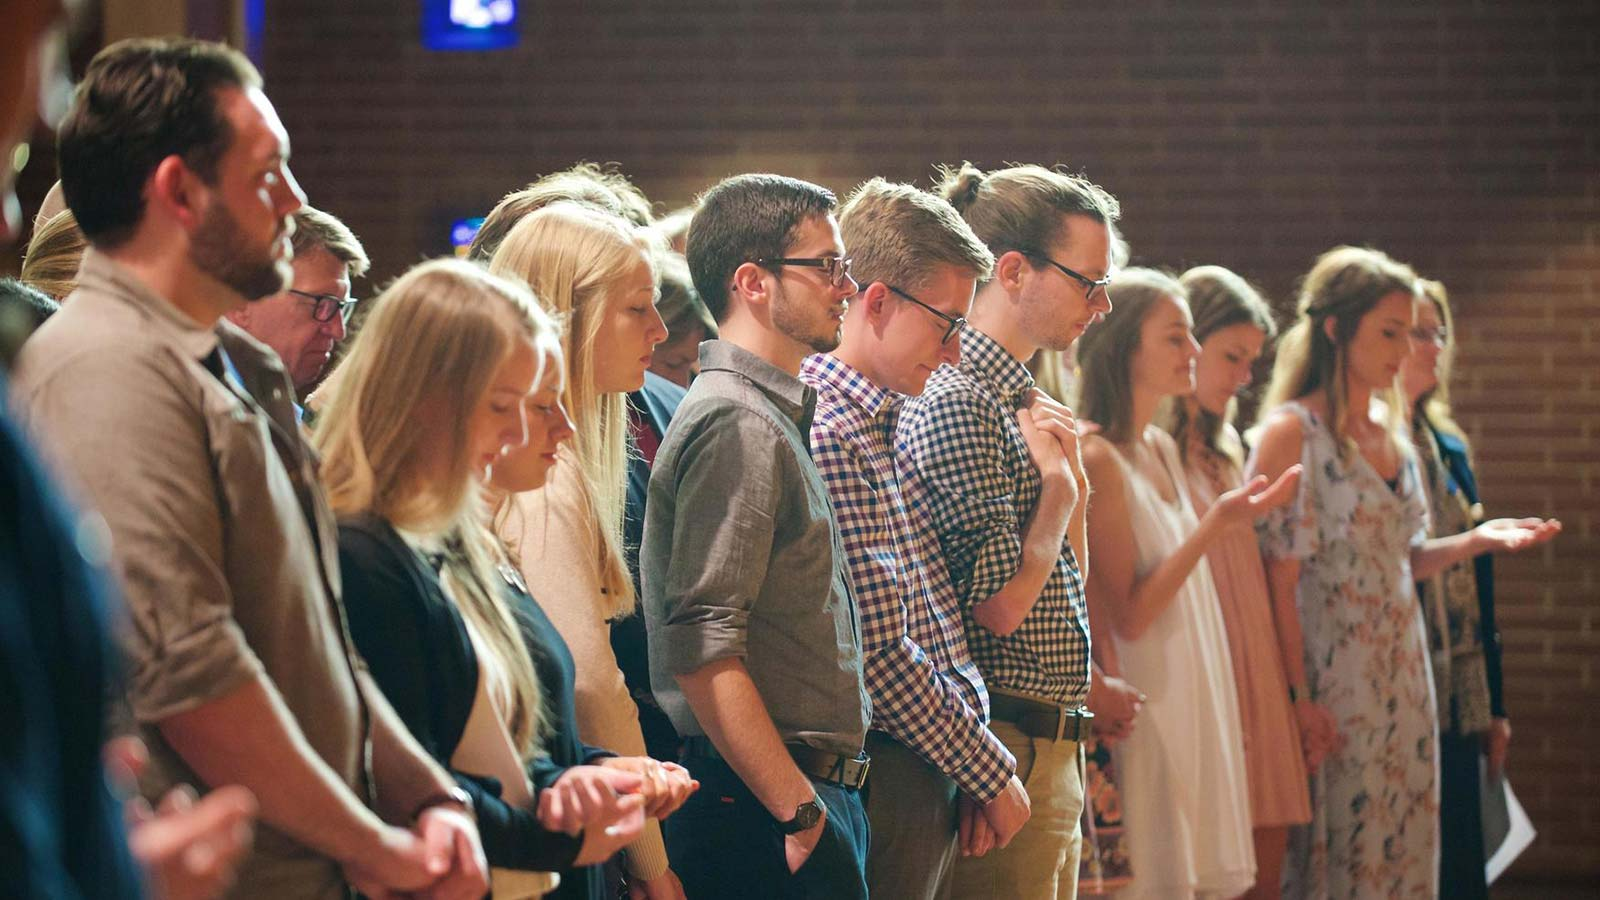 Students in a worship service